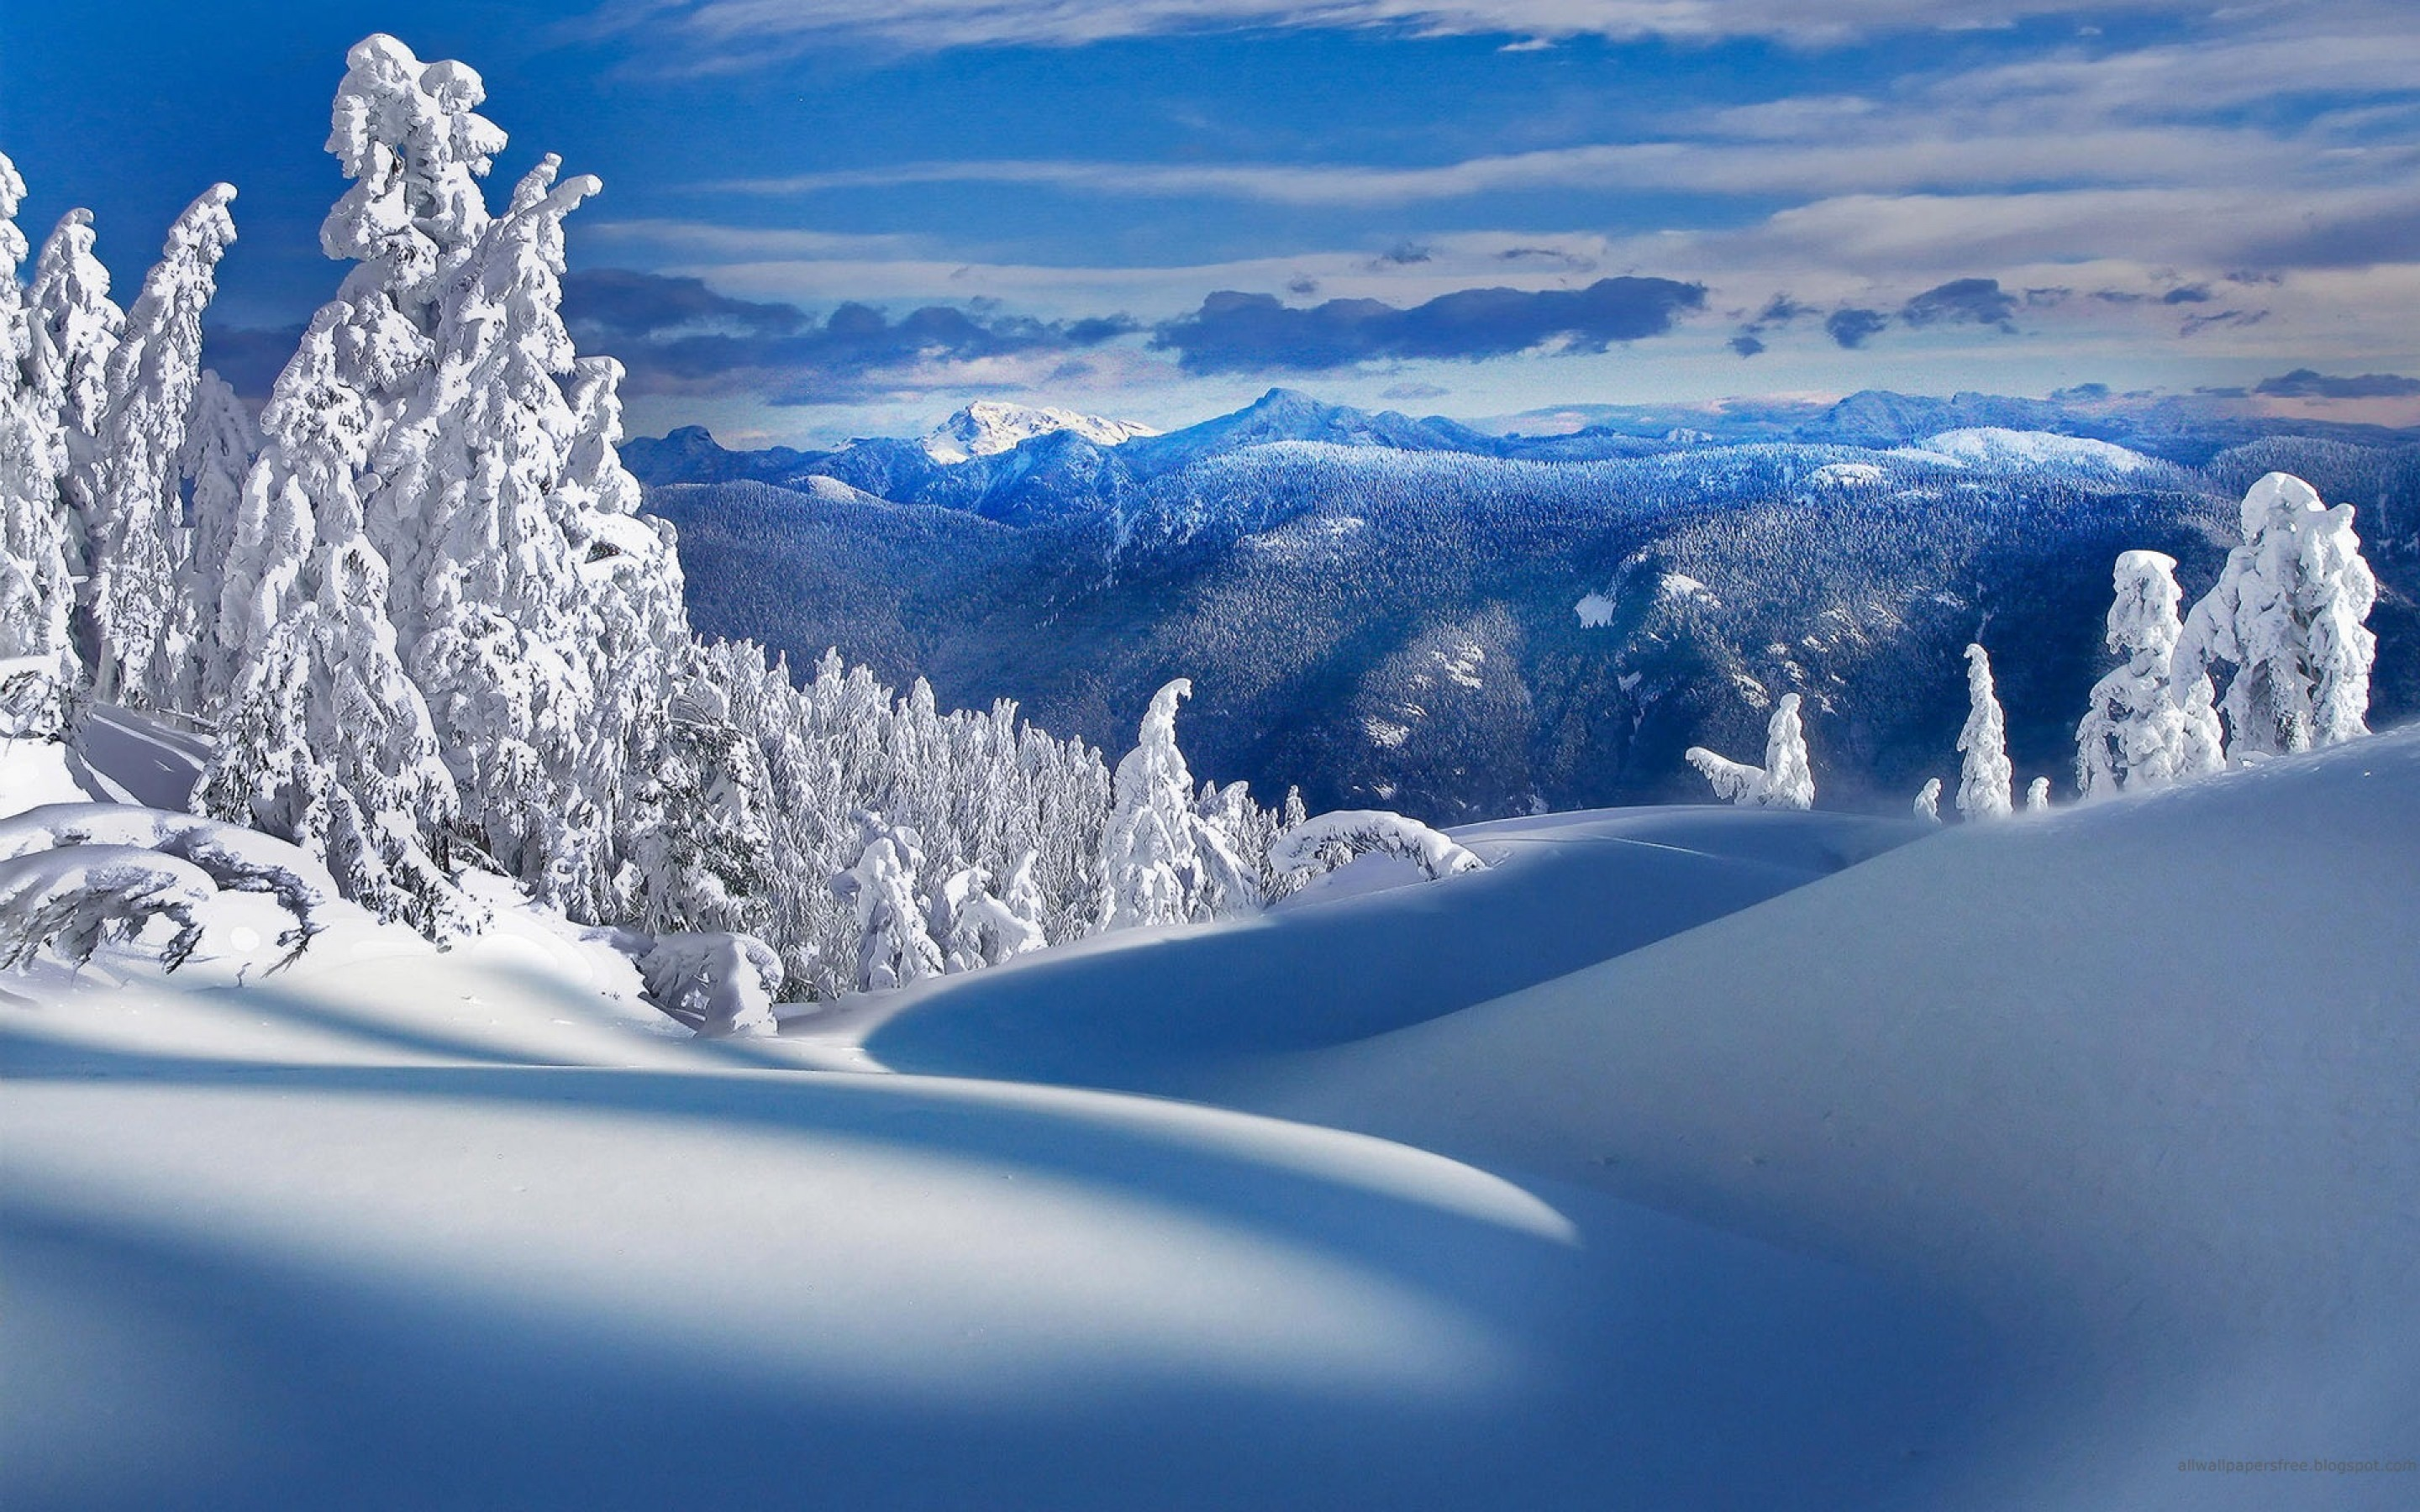 snow whitewater, in